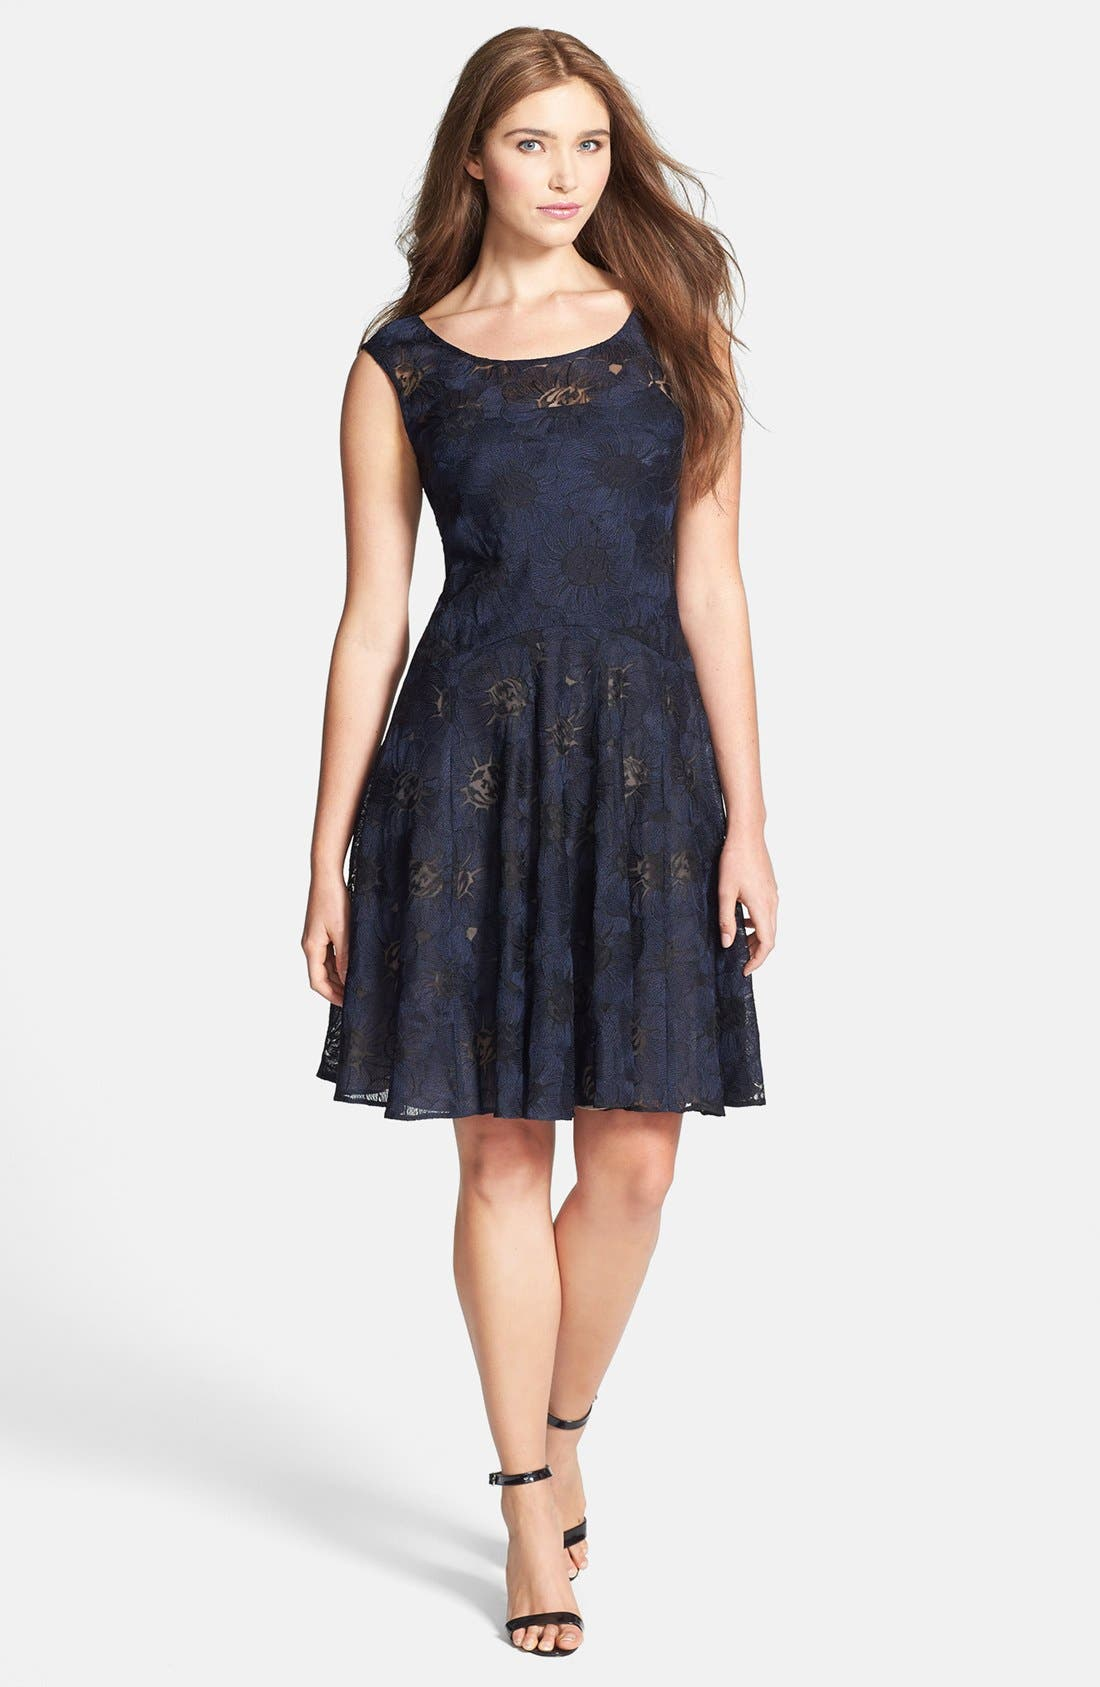 Alternate Image 1 Selected - Vera Wang Illusion Lined Lace Fit & Flare Dress